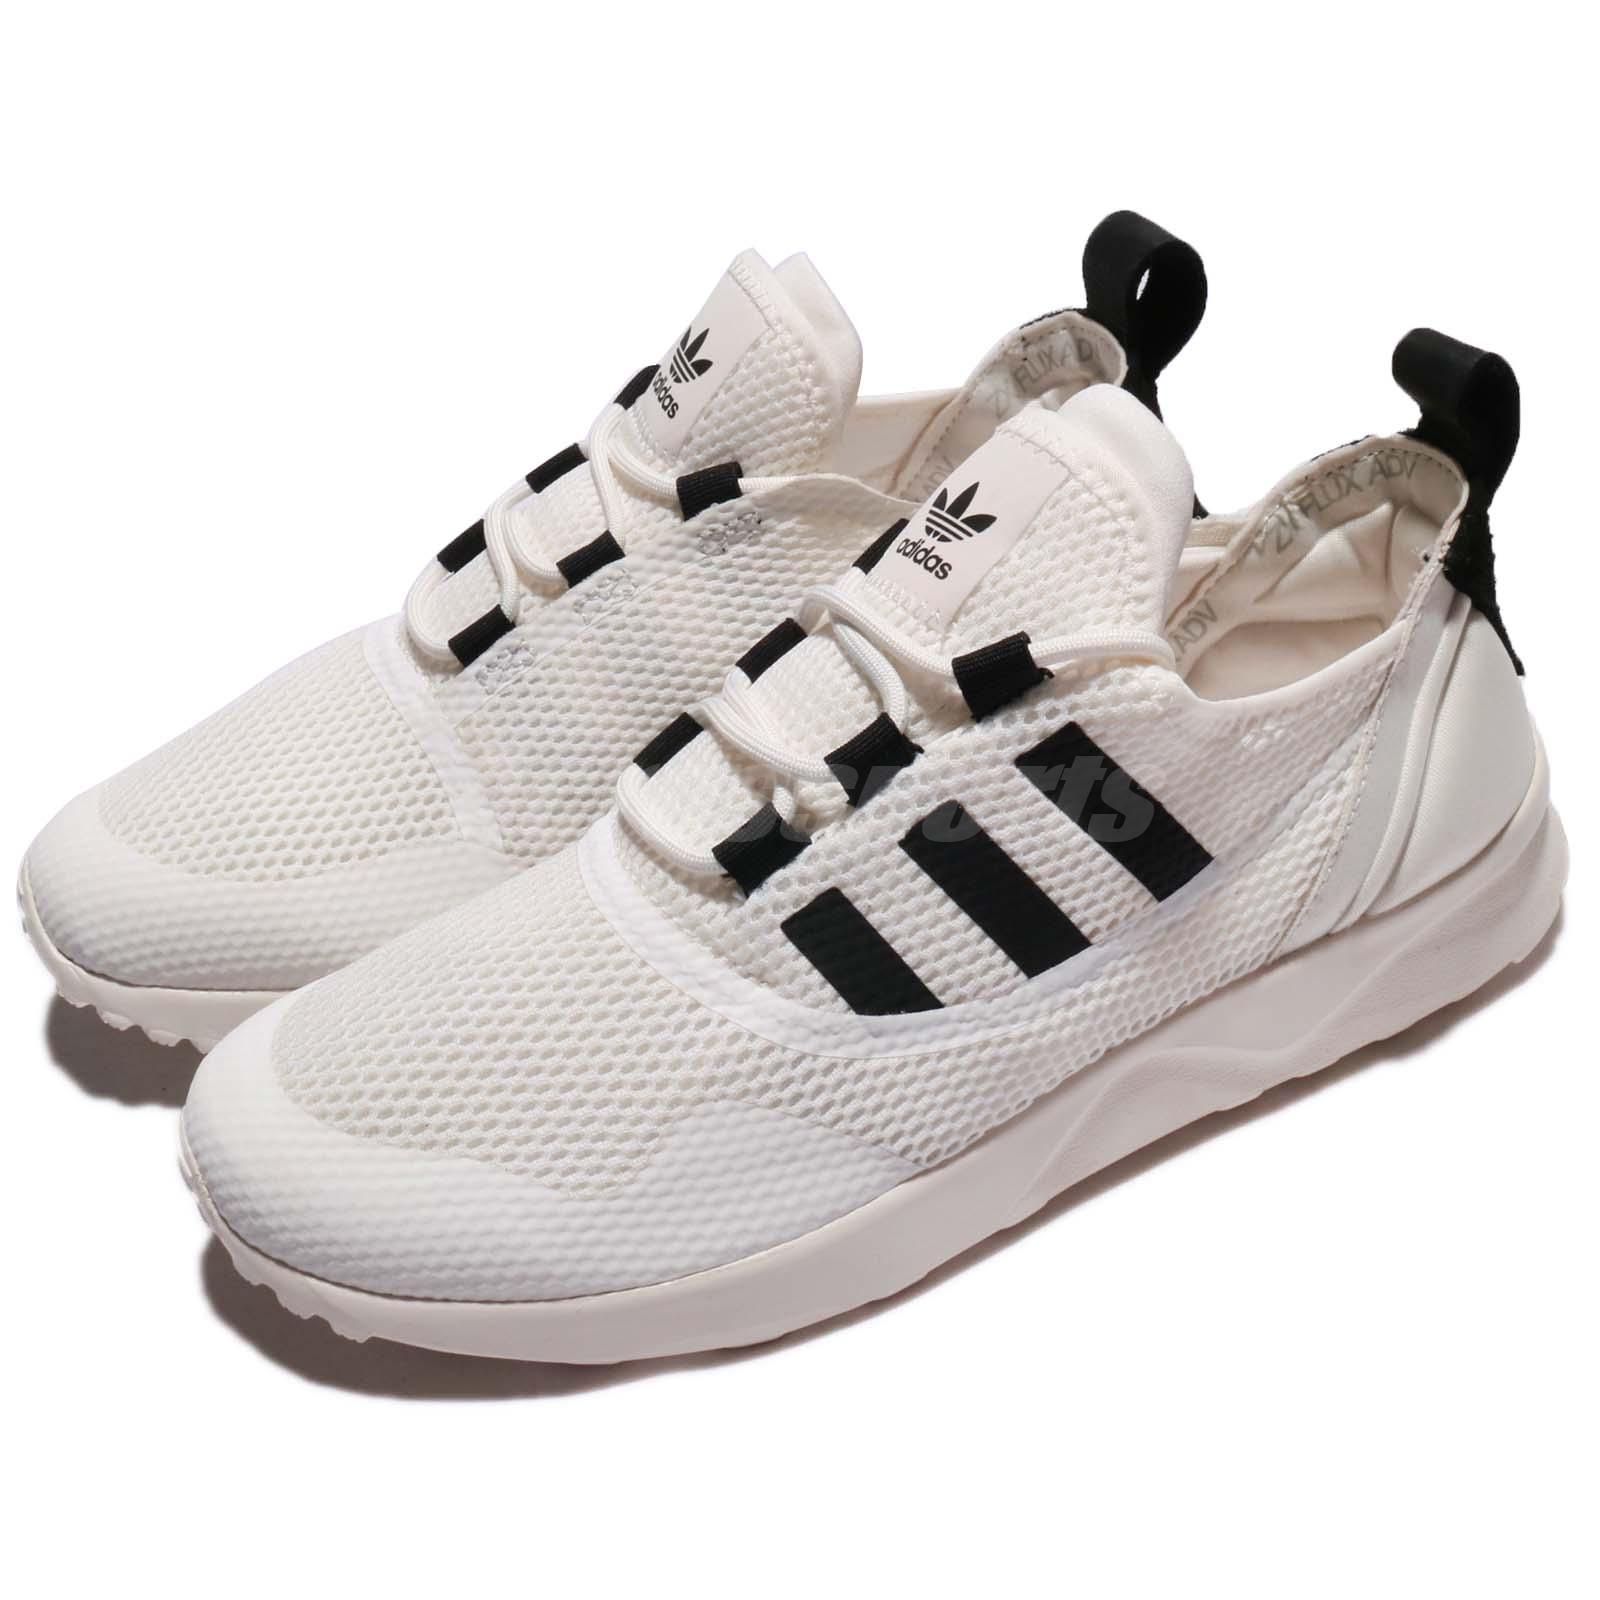 2b4fa632ae8ce Details about adidas Originals ZX Flux ADV Virtue W White Black Women  Running Shoes CP9883